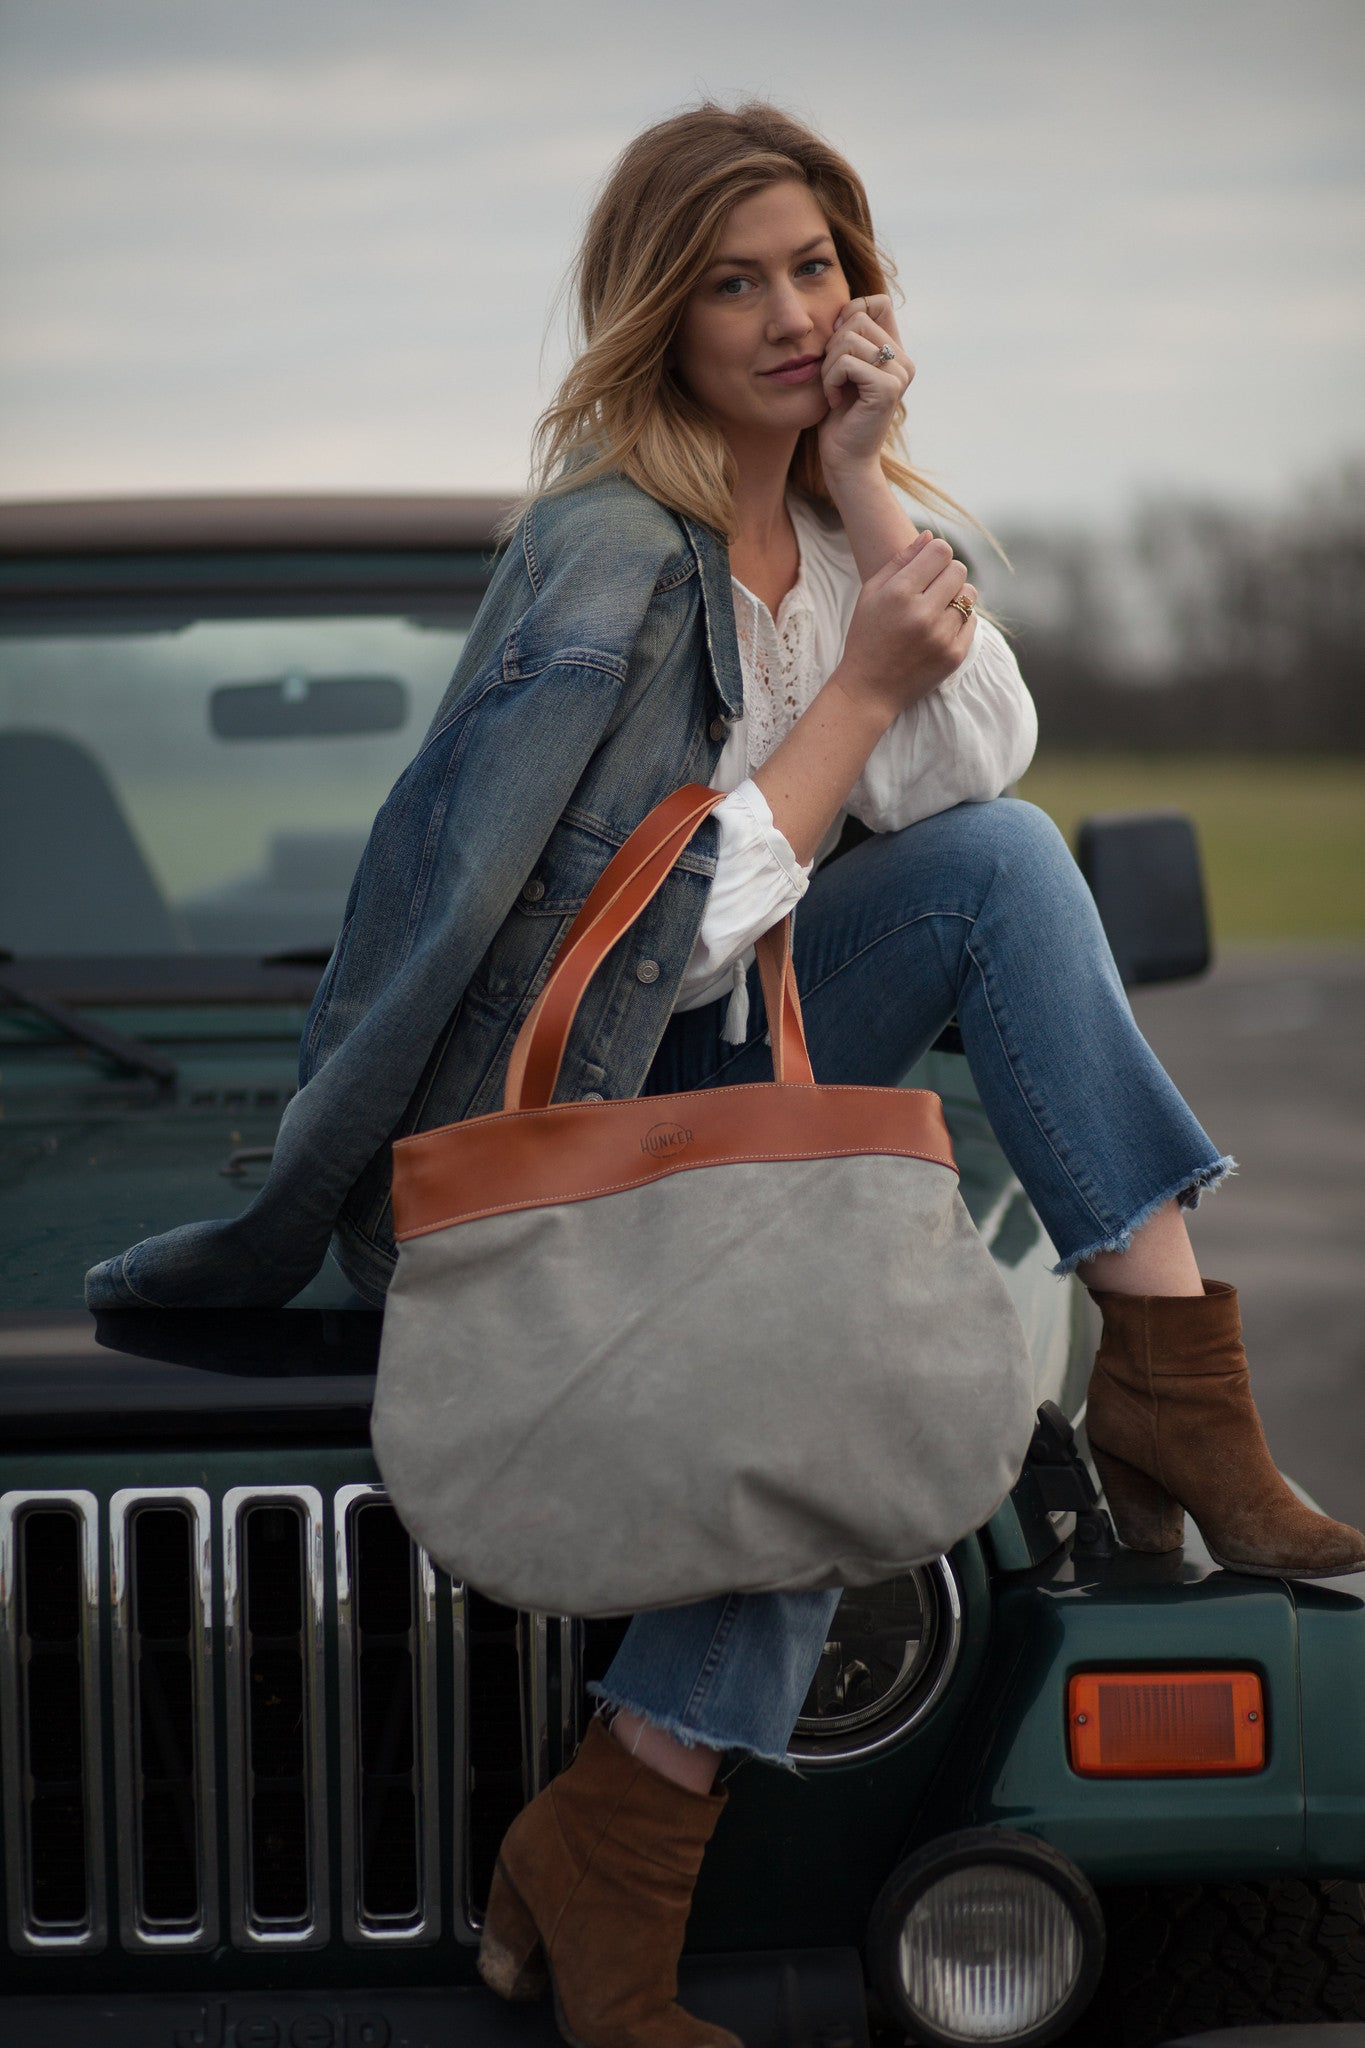 Hunker Bag Co: Horween leather and suede tote bag